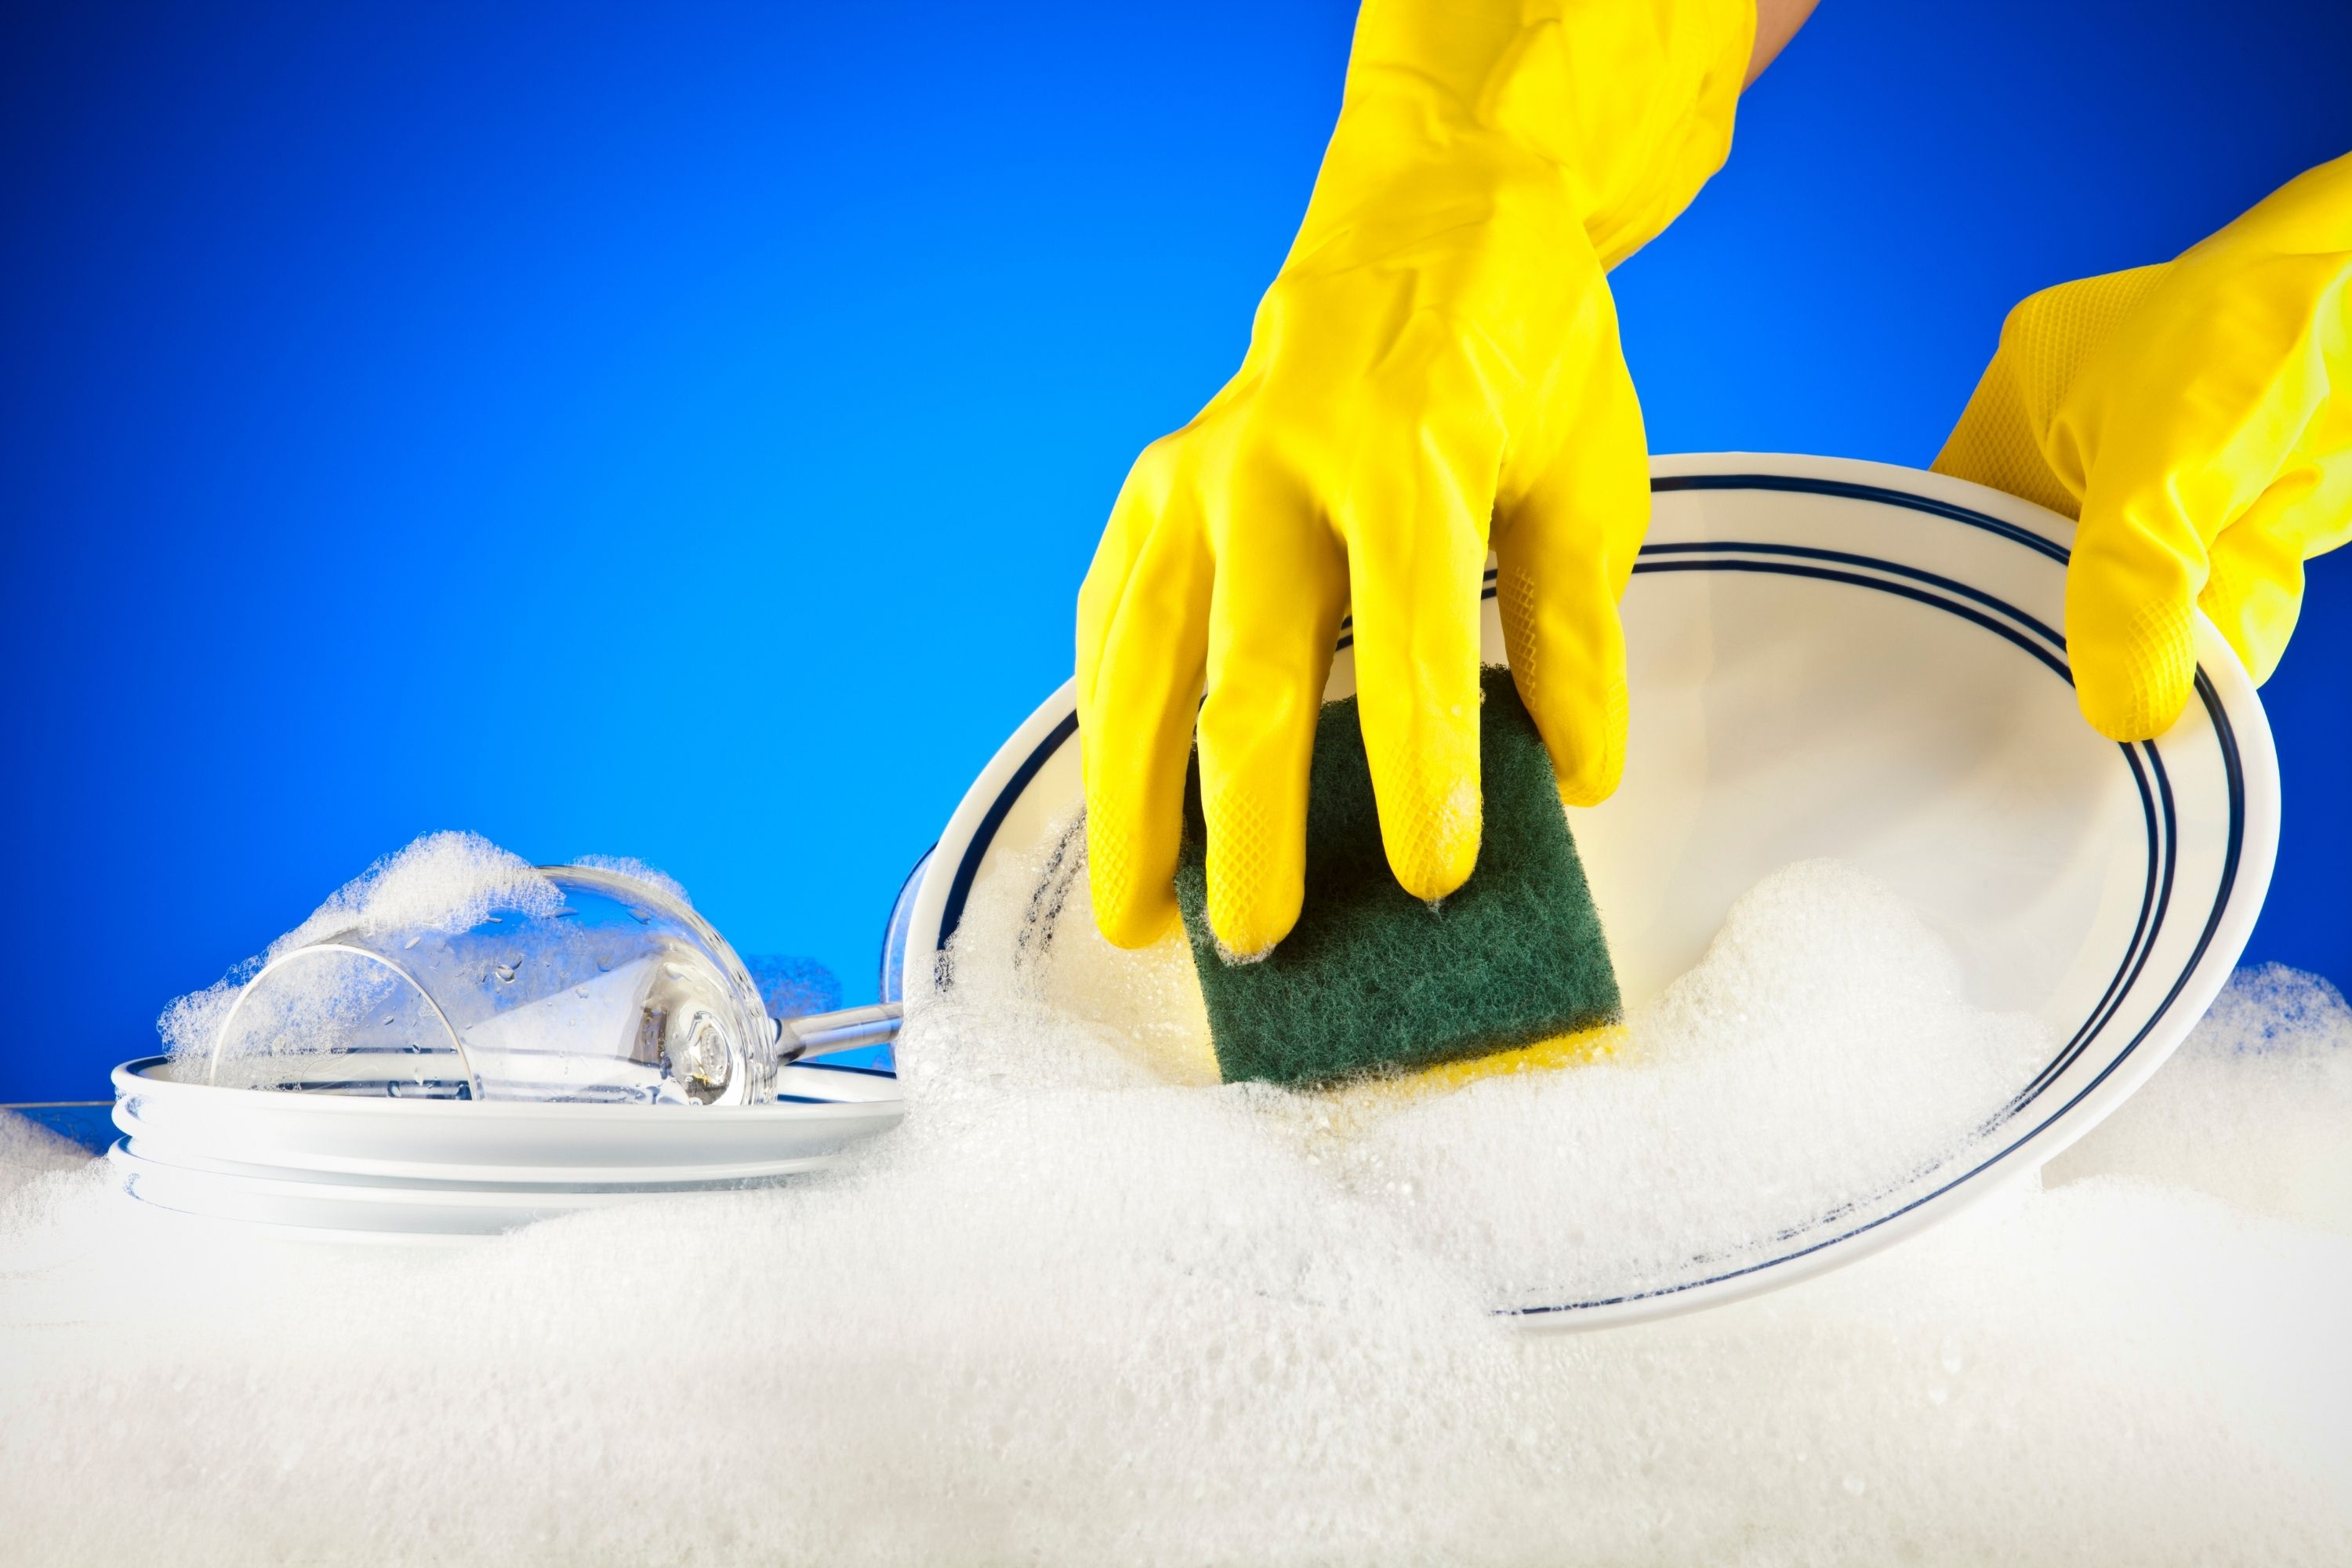 Which Is the Correct Order Of The Steps For Cleaning And Sanitizing In the Kitchen